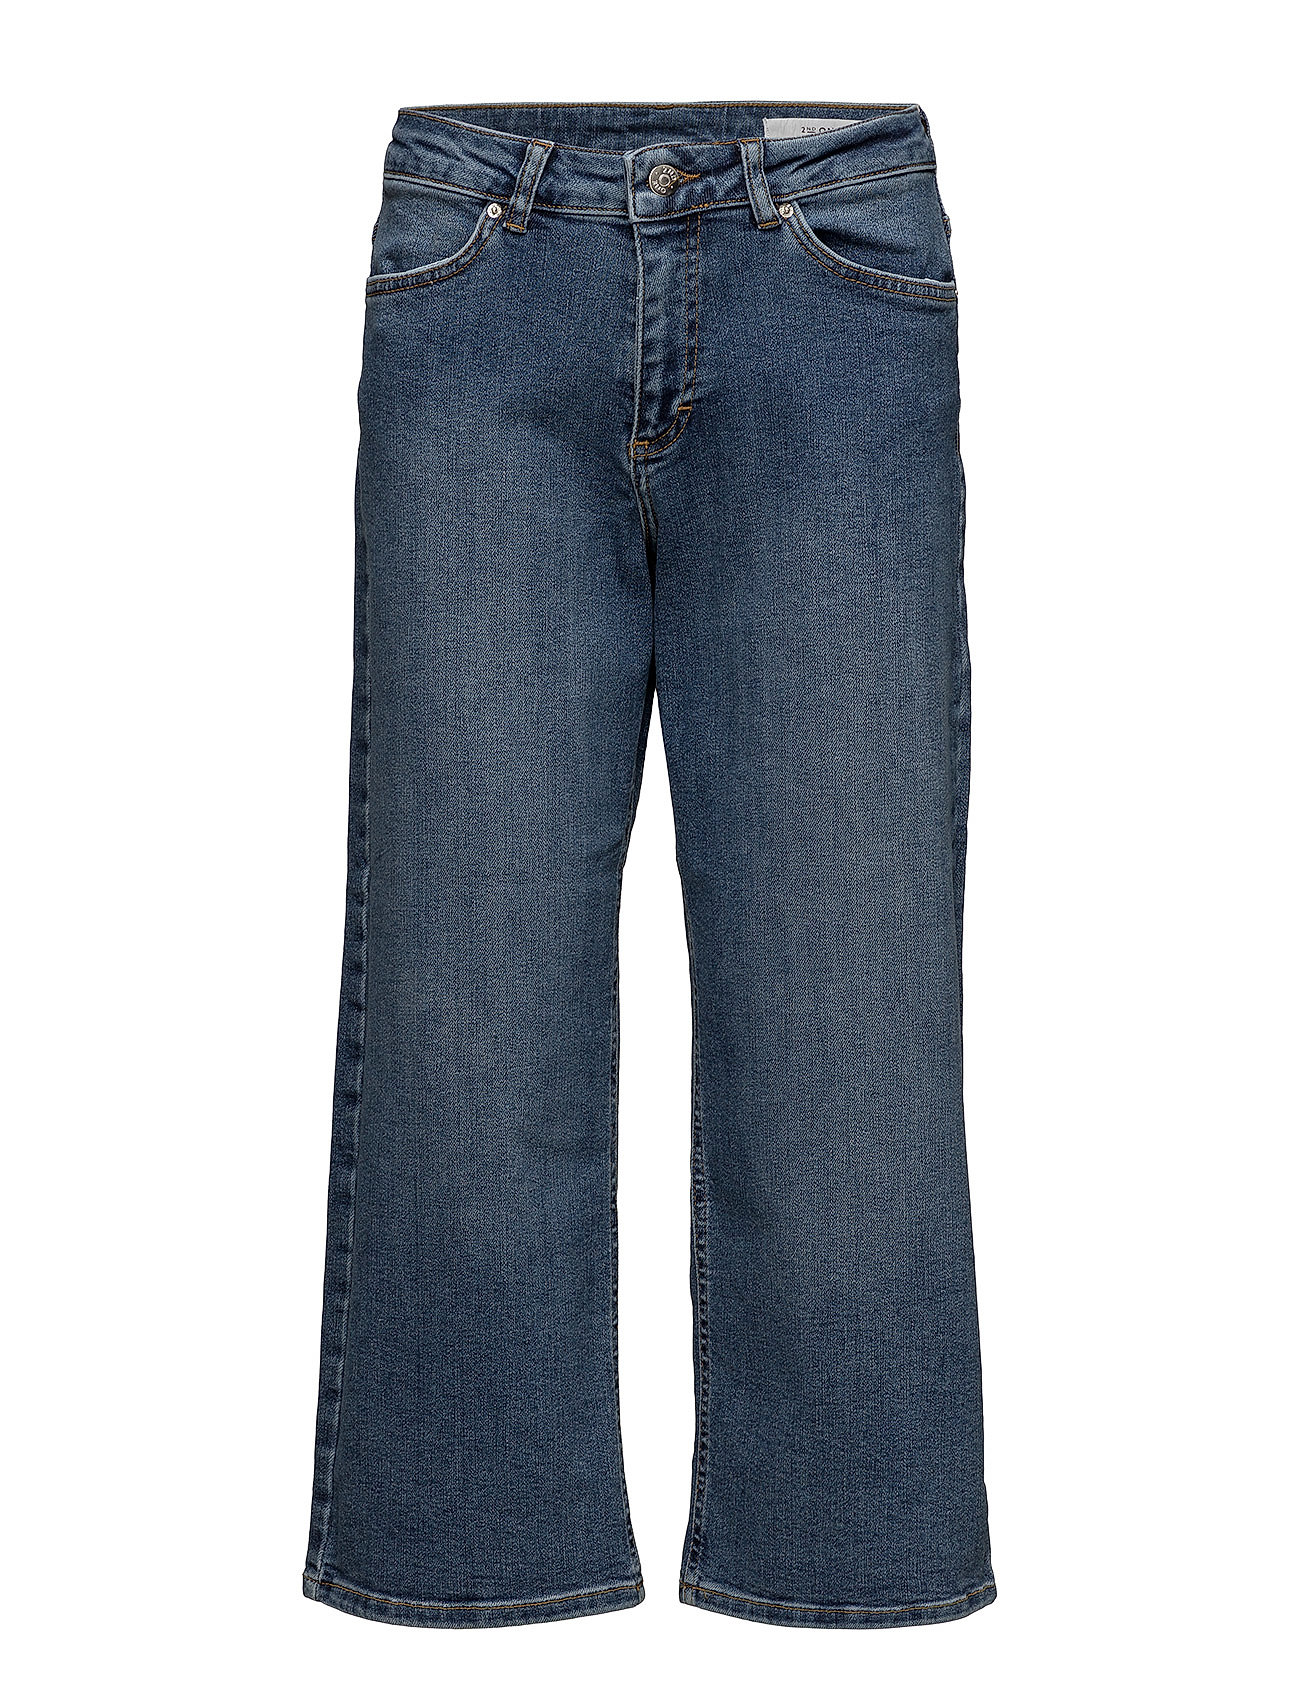 2nd One Adele 109 Jeans